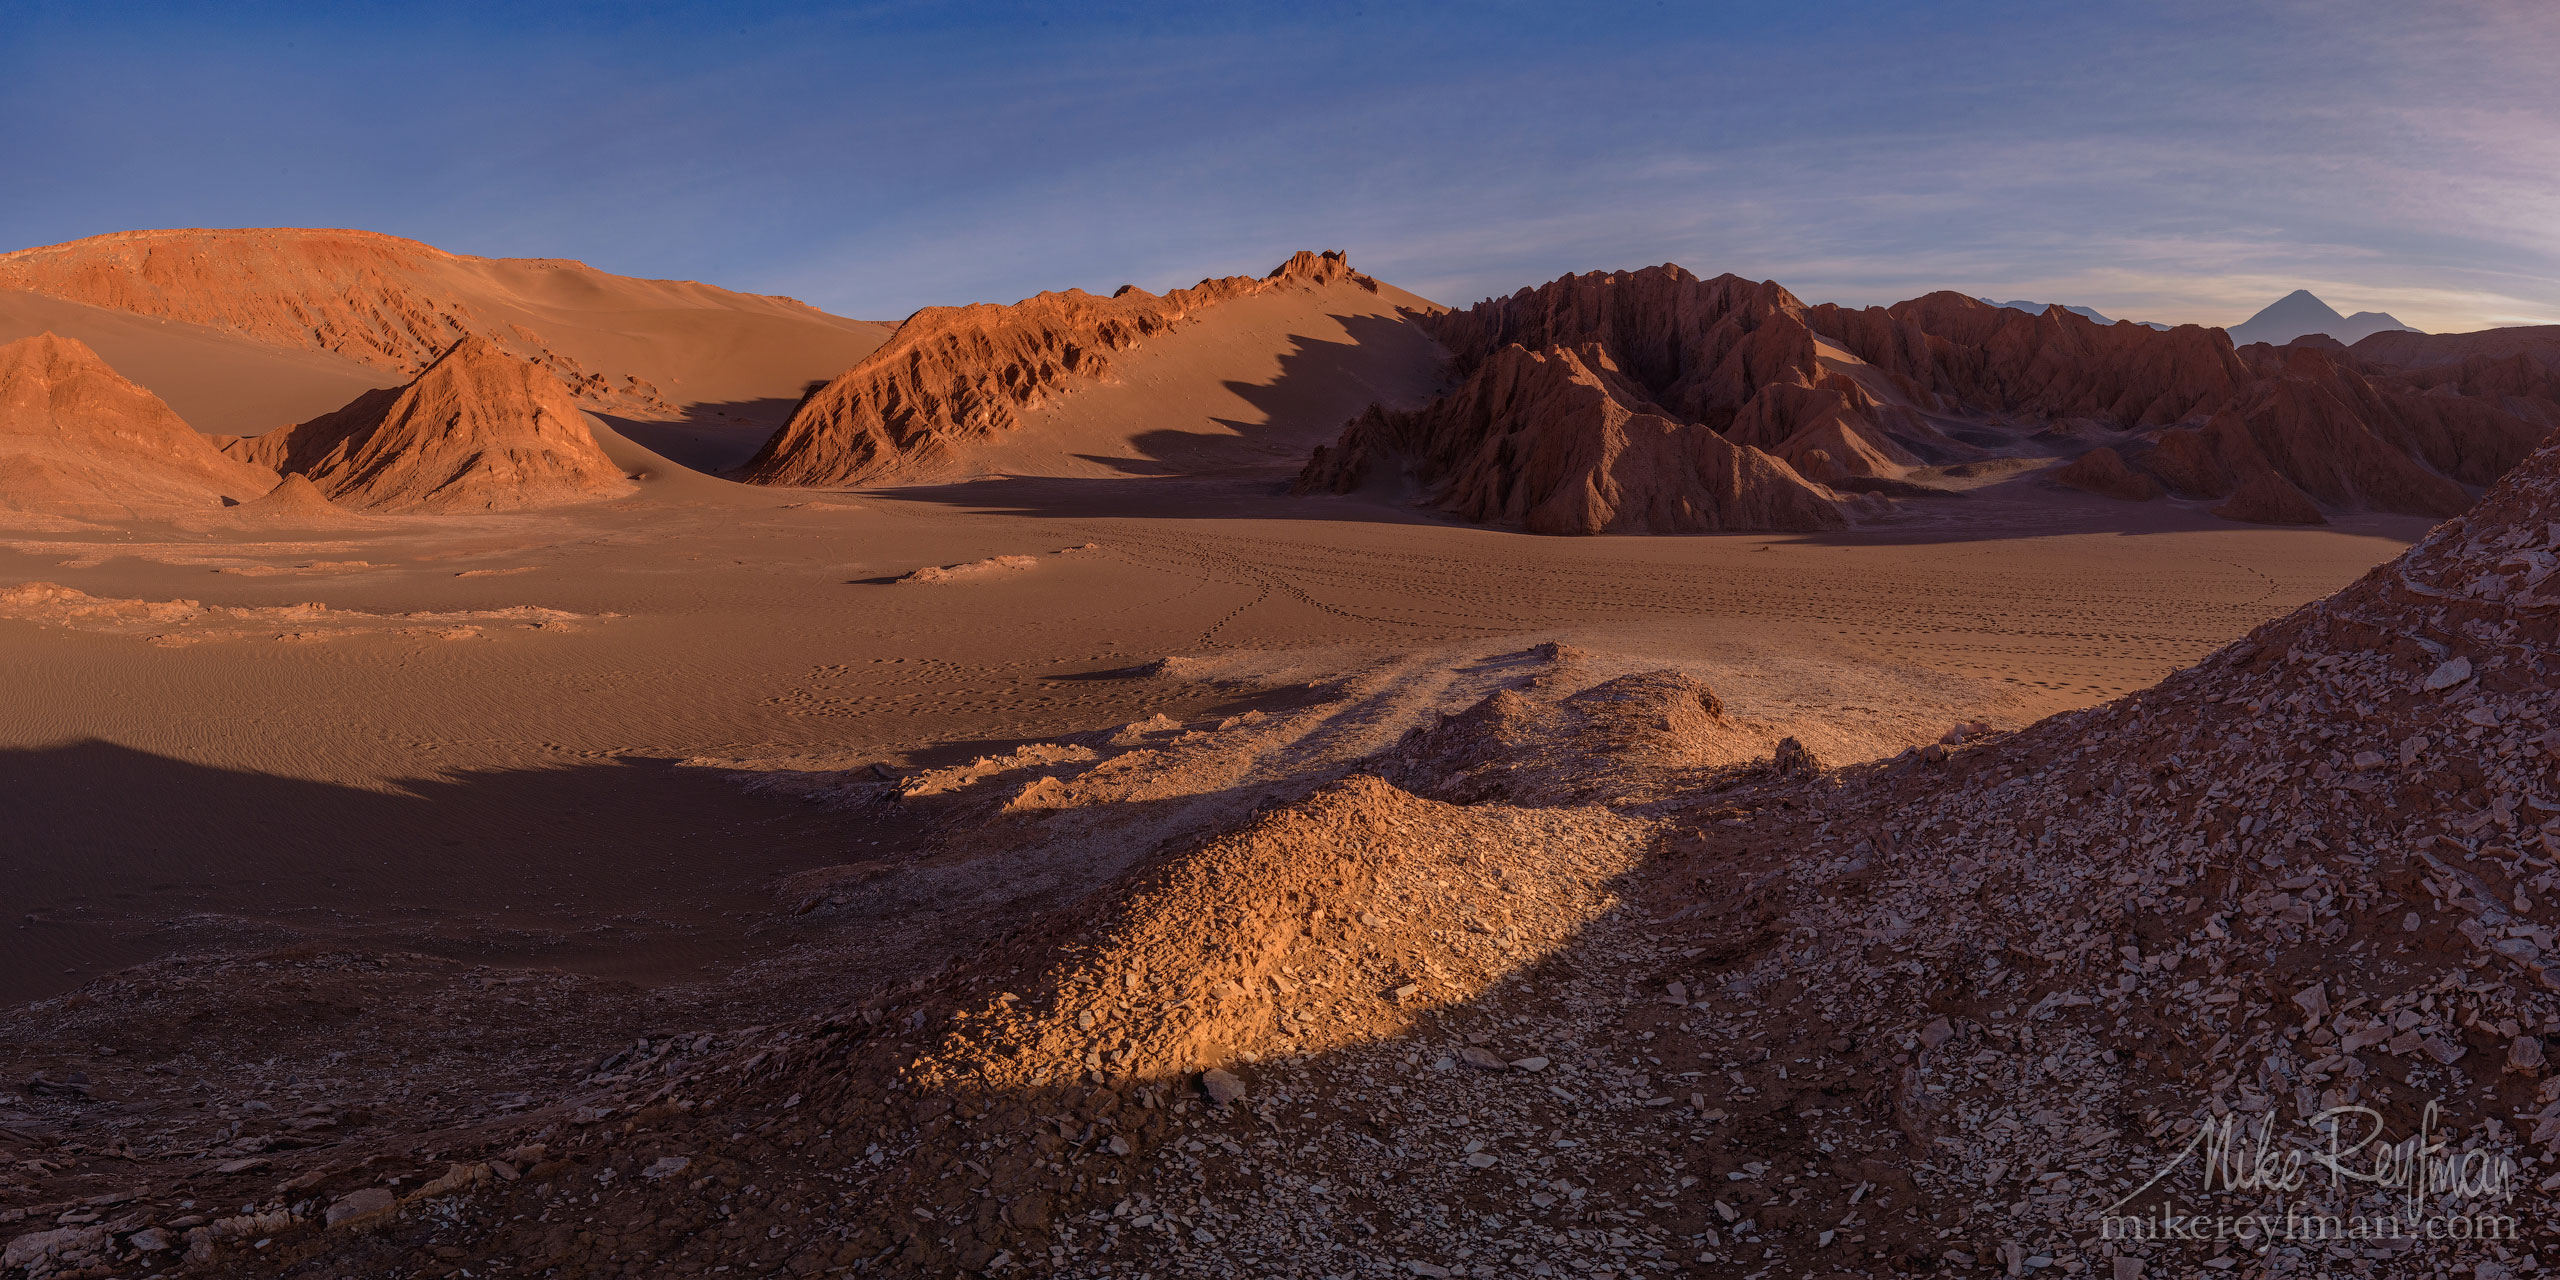 La Cordillera de la sal. Parque nacional del Valle de la Muerte, San Pedro de Atacama, Atacama Desert, Antofagasta Region, Chile AA1-D1D8237_Pano_1X2 - Atacama and Altiplano. The Driest Desert and The High Plain - Mike Reyfman Photography